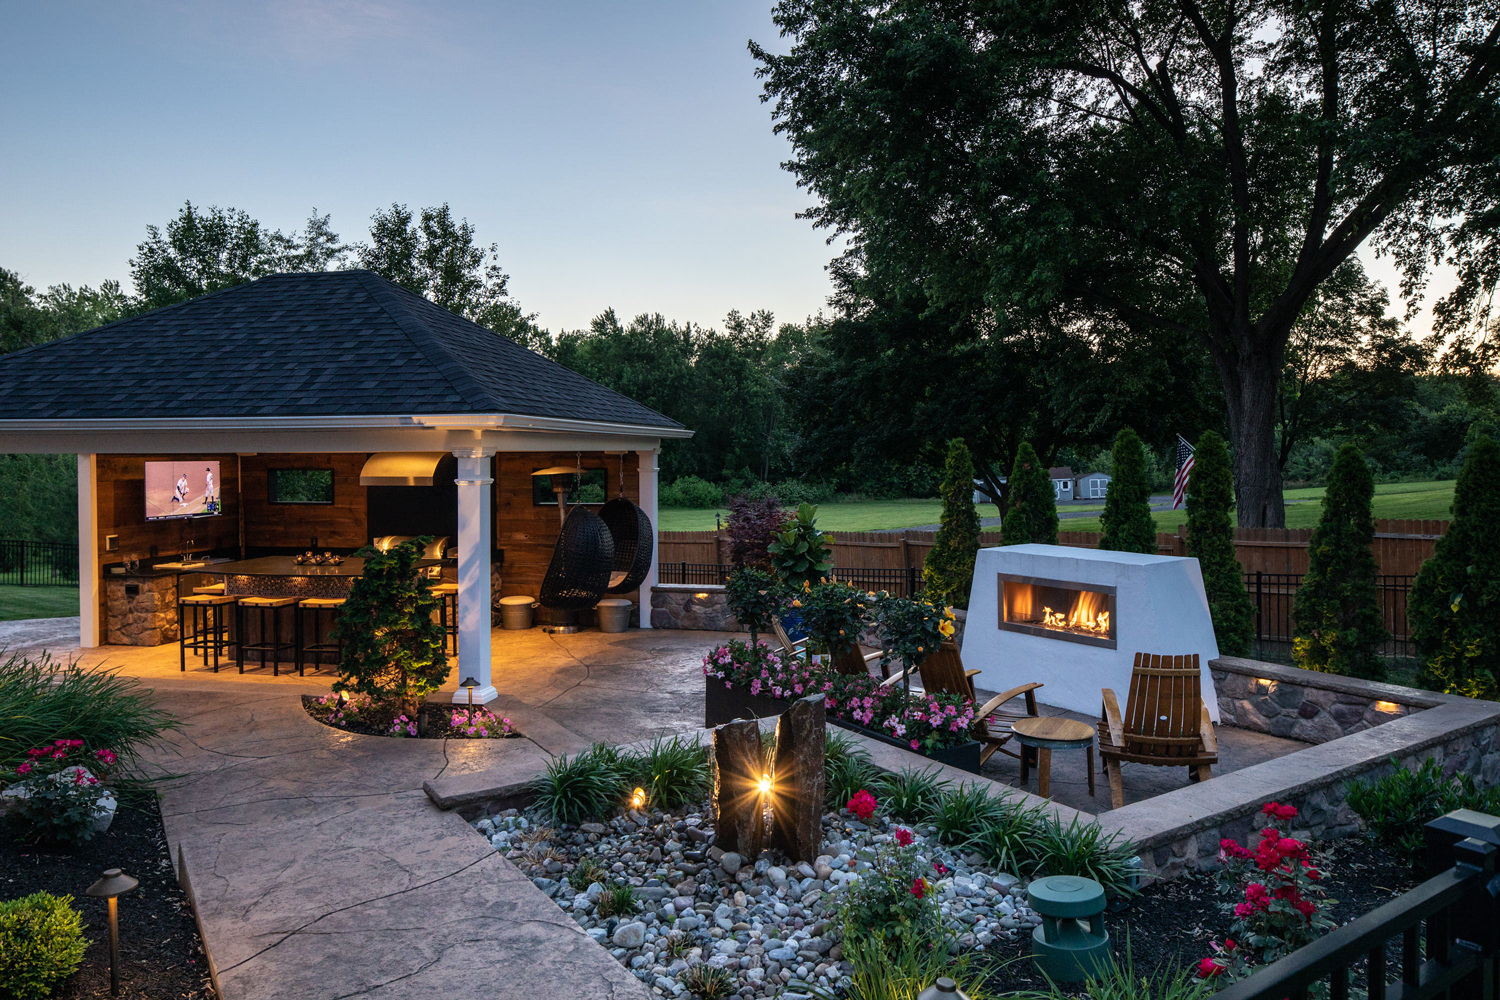 This photo captures the perfect balance between structure and landscape supporting and complementing each other to create a lovely and harmonious outdoor living space.